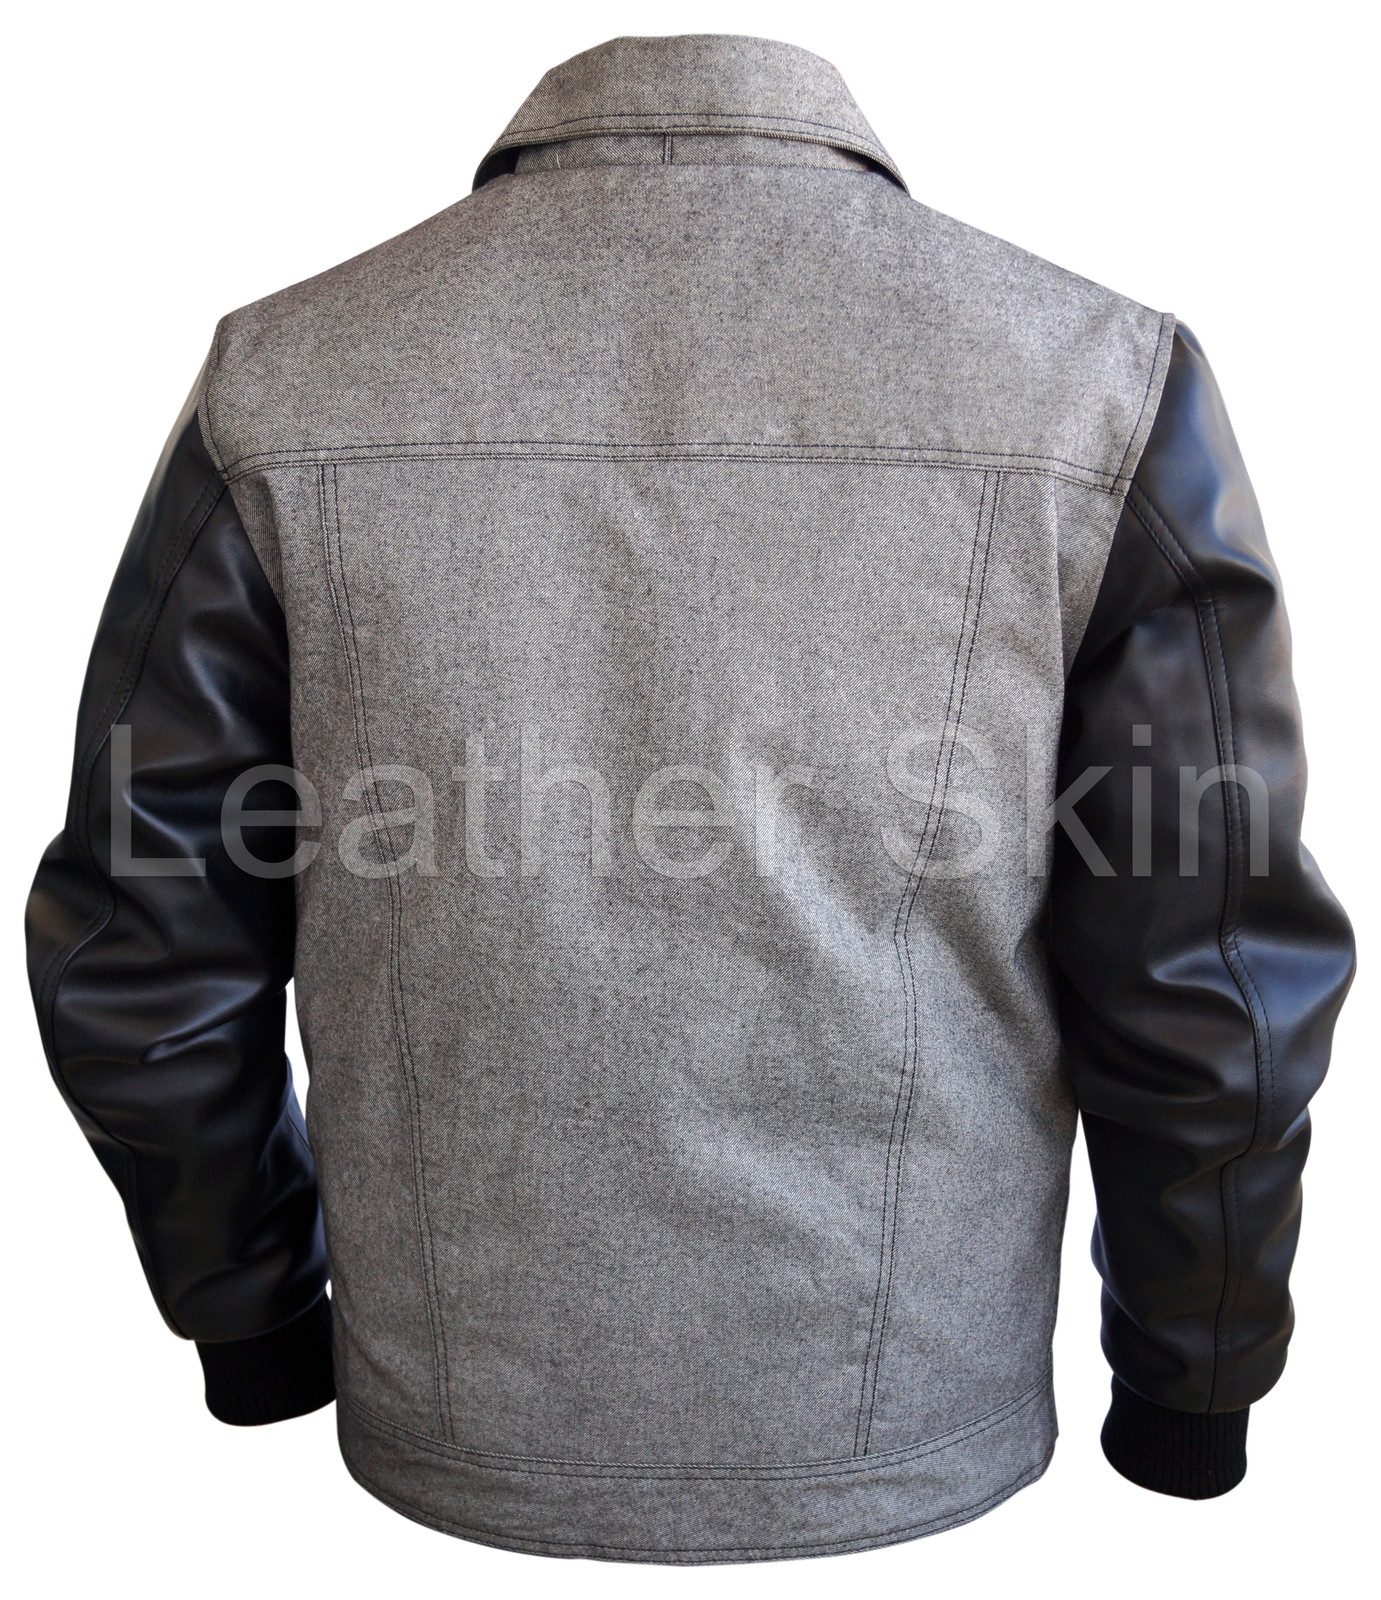 Leather Sleeves Varsity Jackets. Leather Sleeves Varsity Jackets purcahse from us for all ages and gender men, women, youth and kids. Our Leather Sleeves Varsity Jackets line you can buy as it is or can be customize as per your desires.